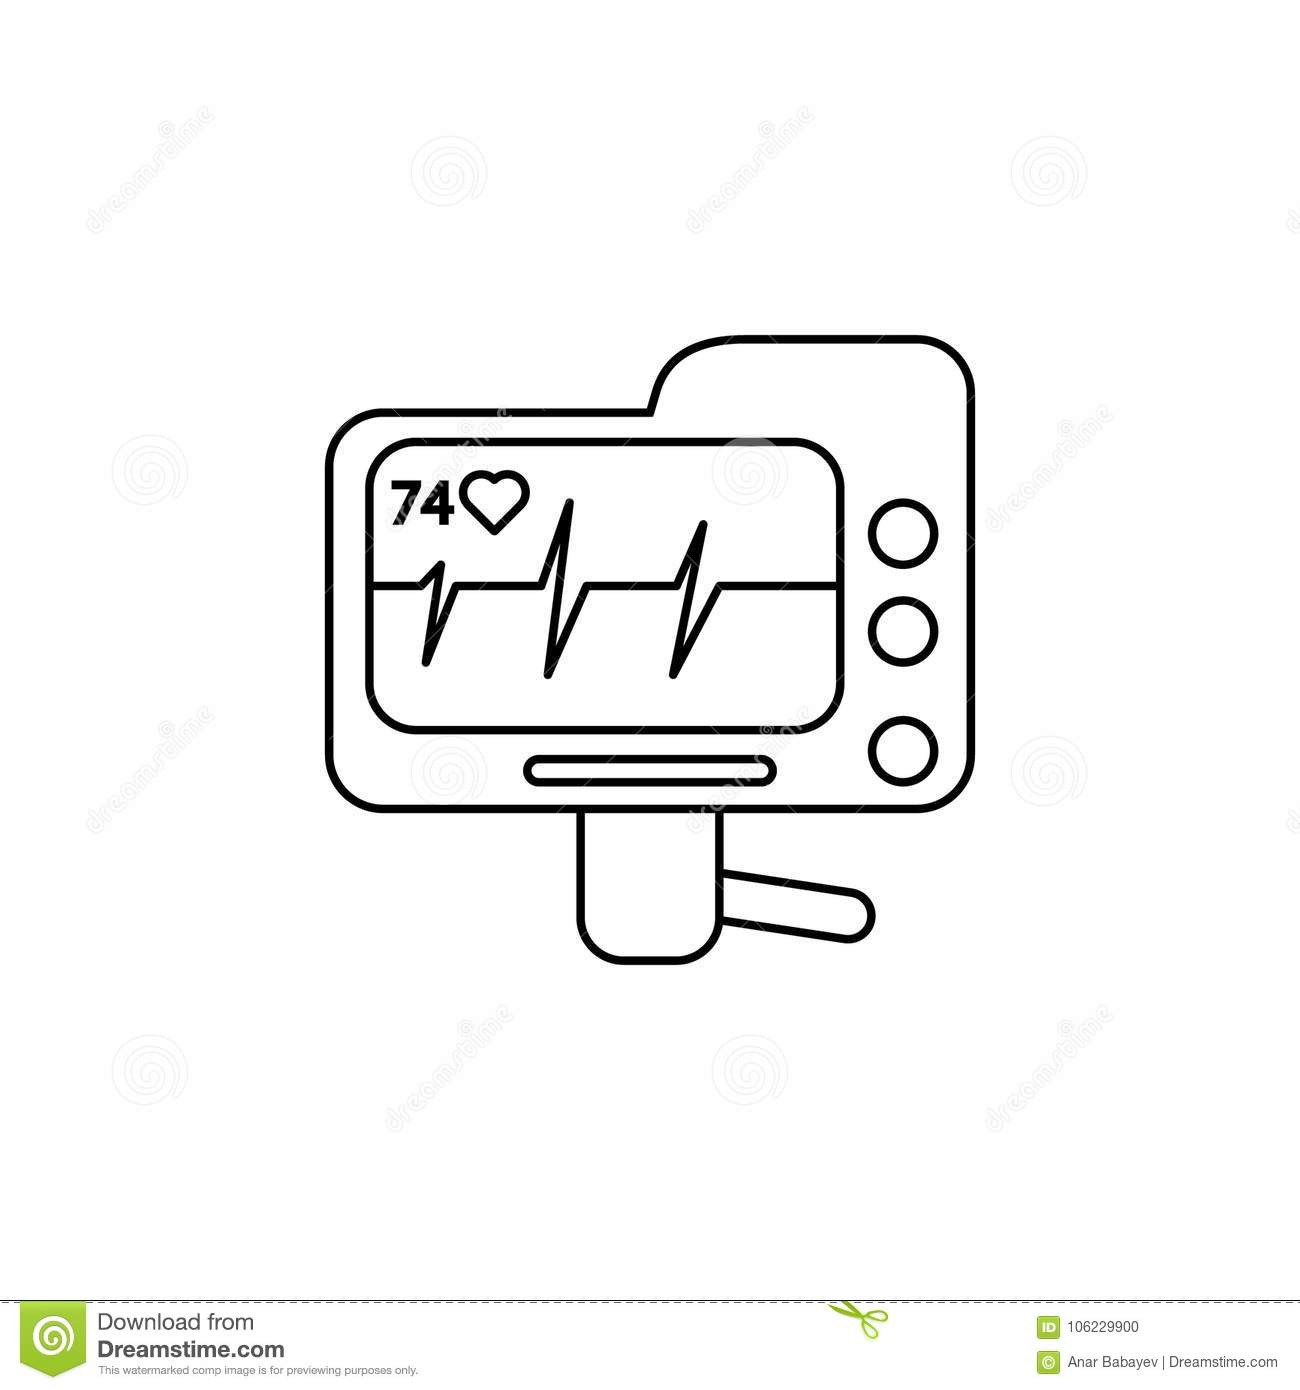 hight resolution of electrocardiogram device and heart pulse on screen line icon element of medecine tools icon premium quality graphic design